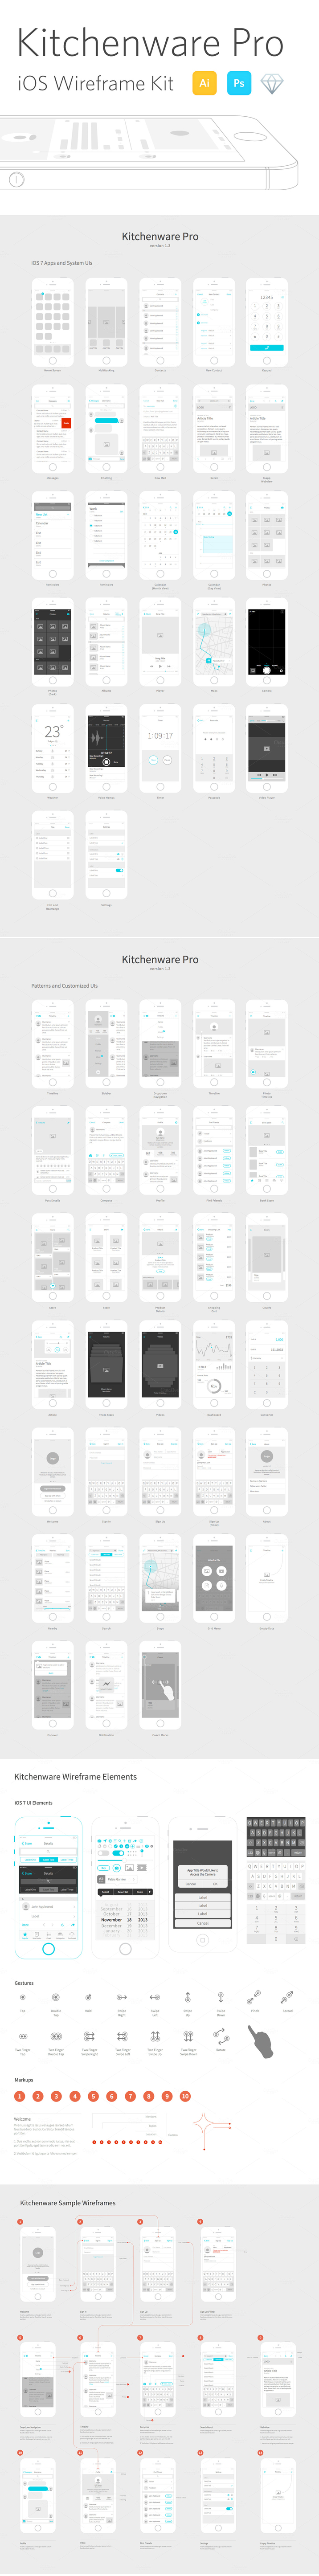 kitchenware_pro_ios_wireframe_kit_18755_cap